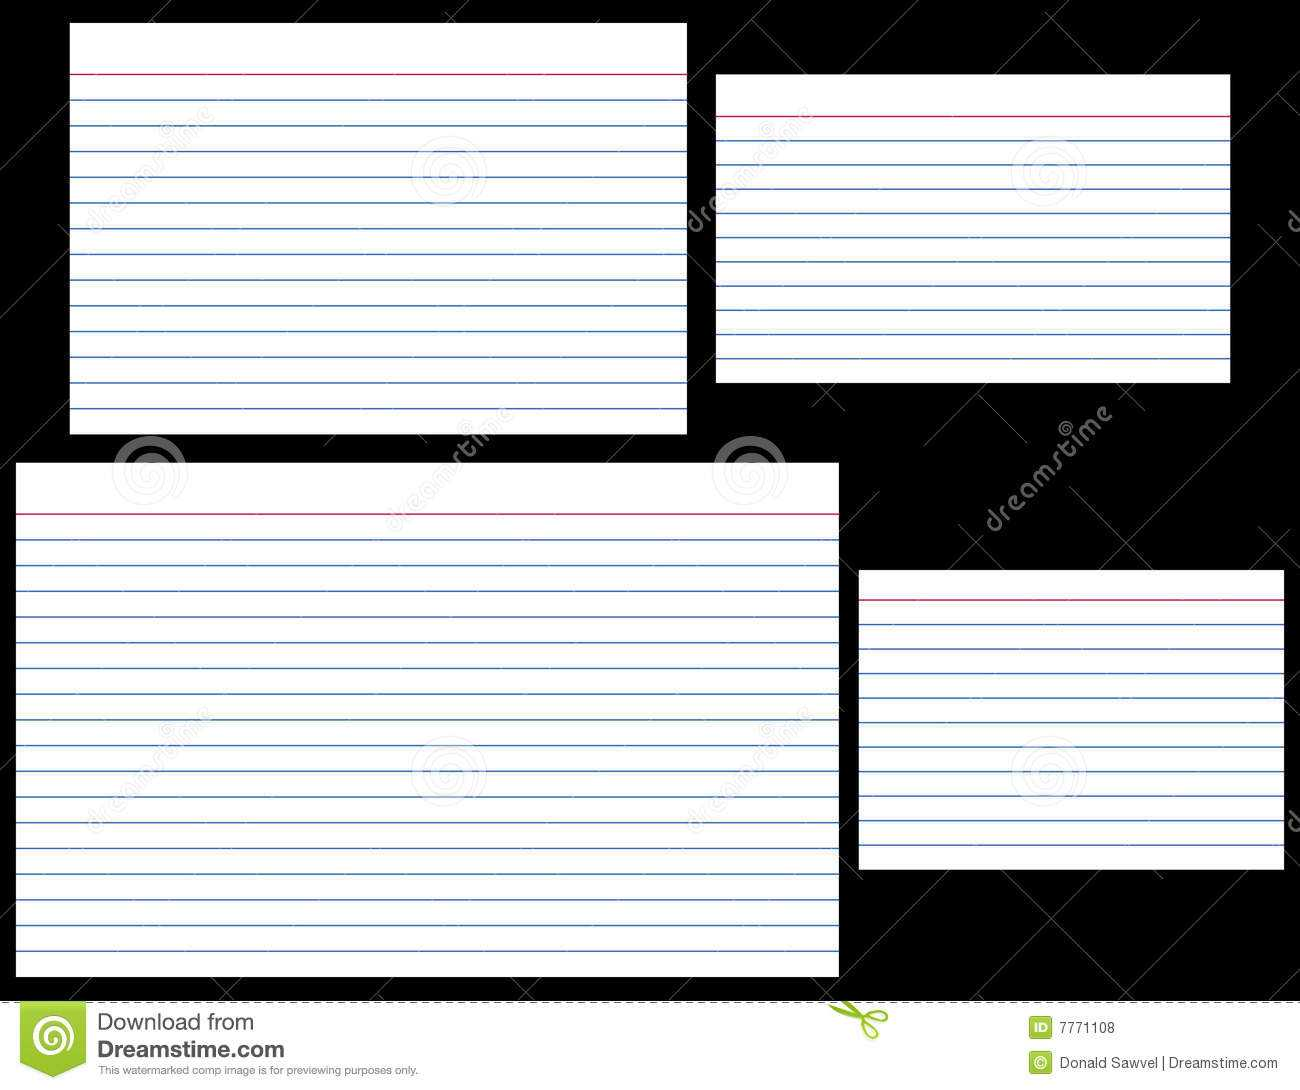 Index Cards Stock Vector. Illustration Of Stationery, Lined Intended For 5 By 8 Index Card Template